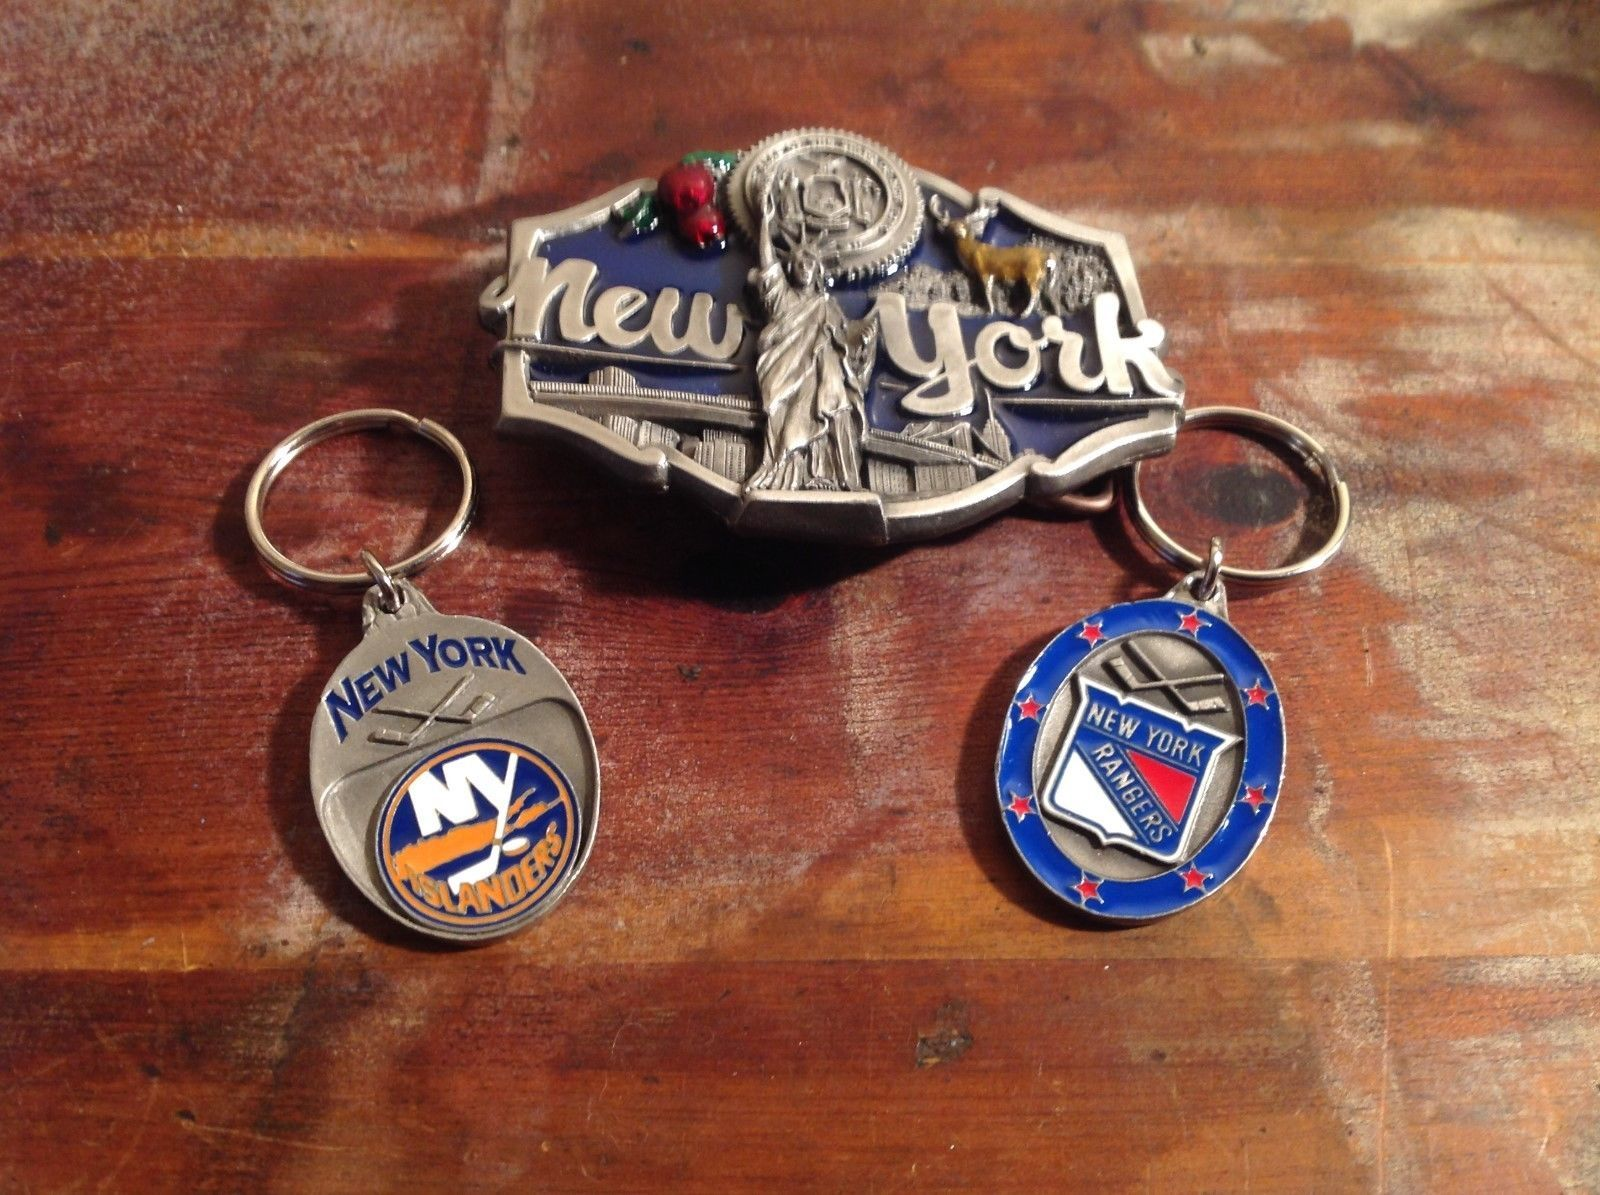 New York State Belt Buckle NY Islanders and NY Rangers Key Chains NEW